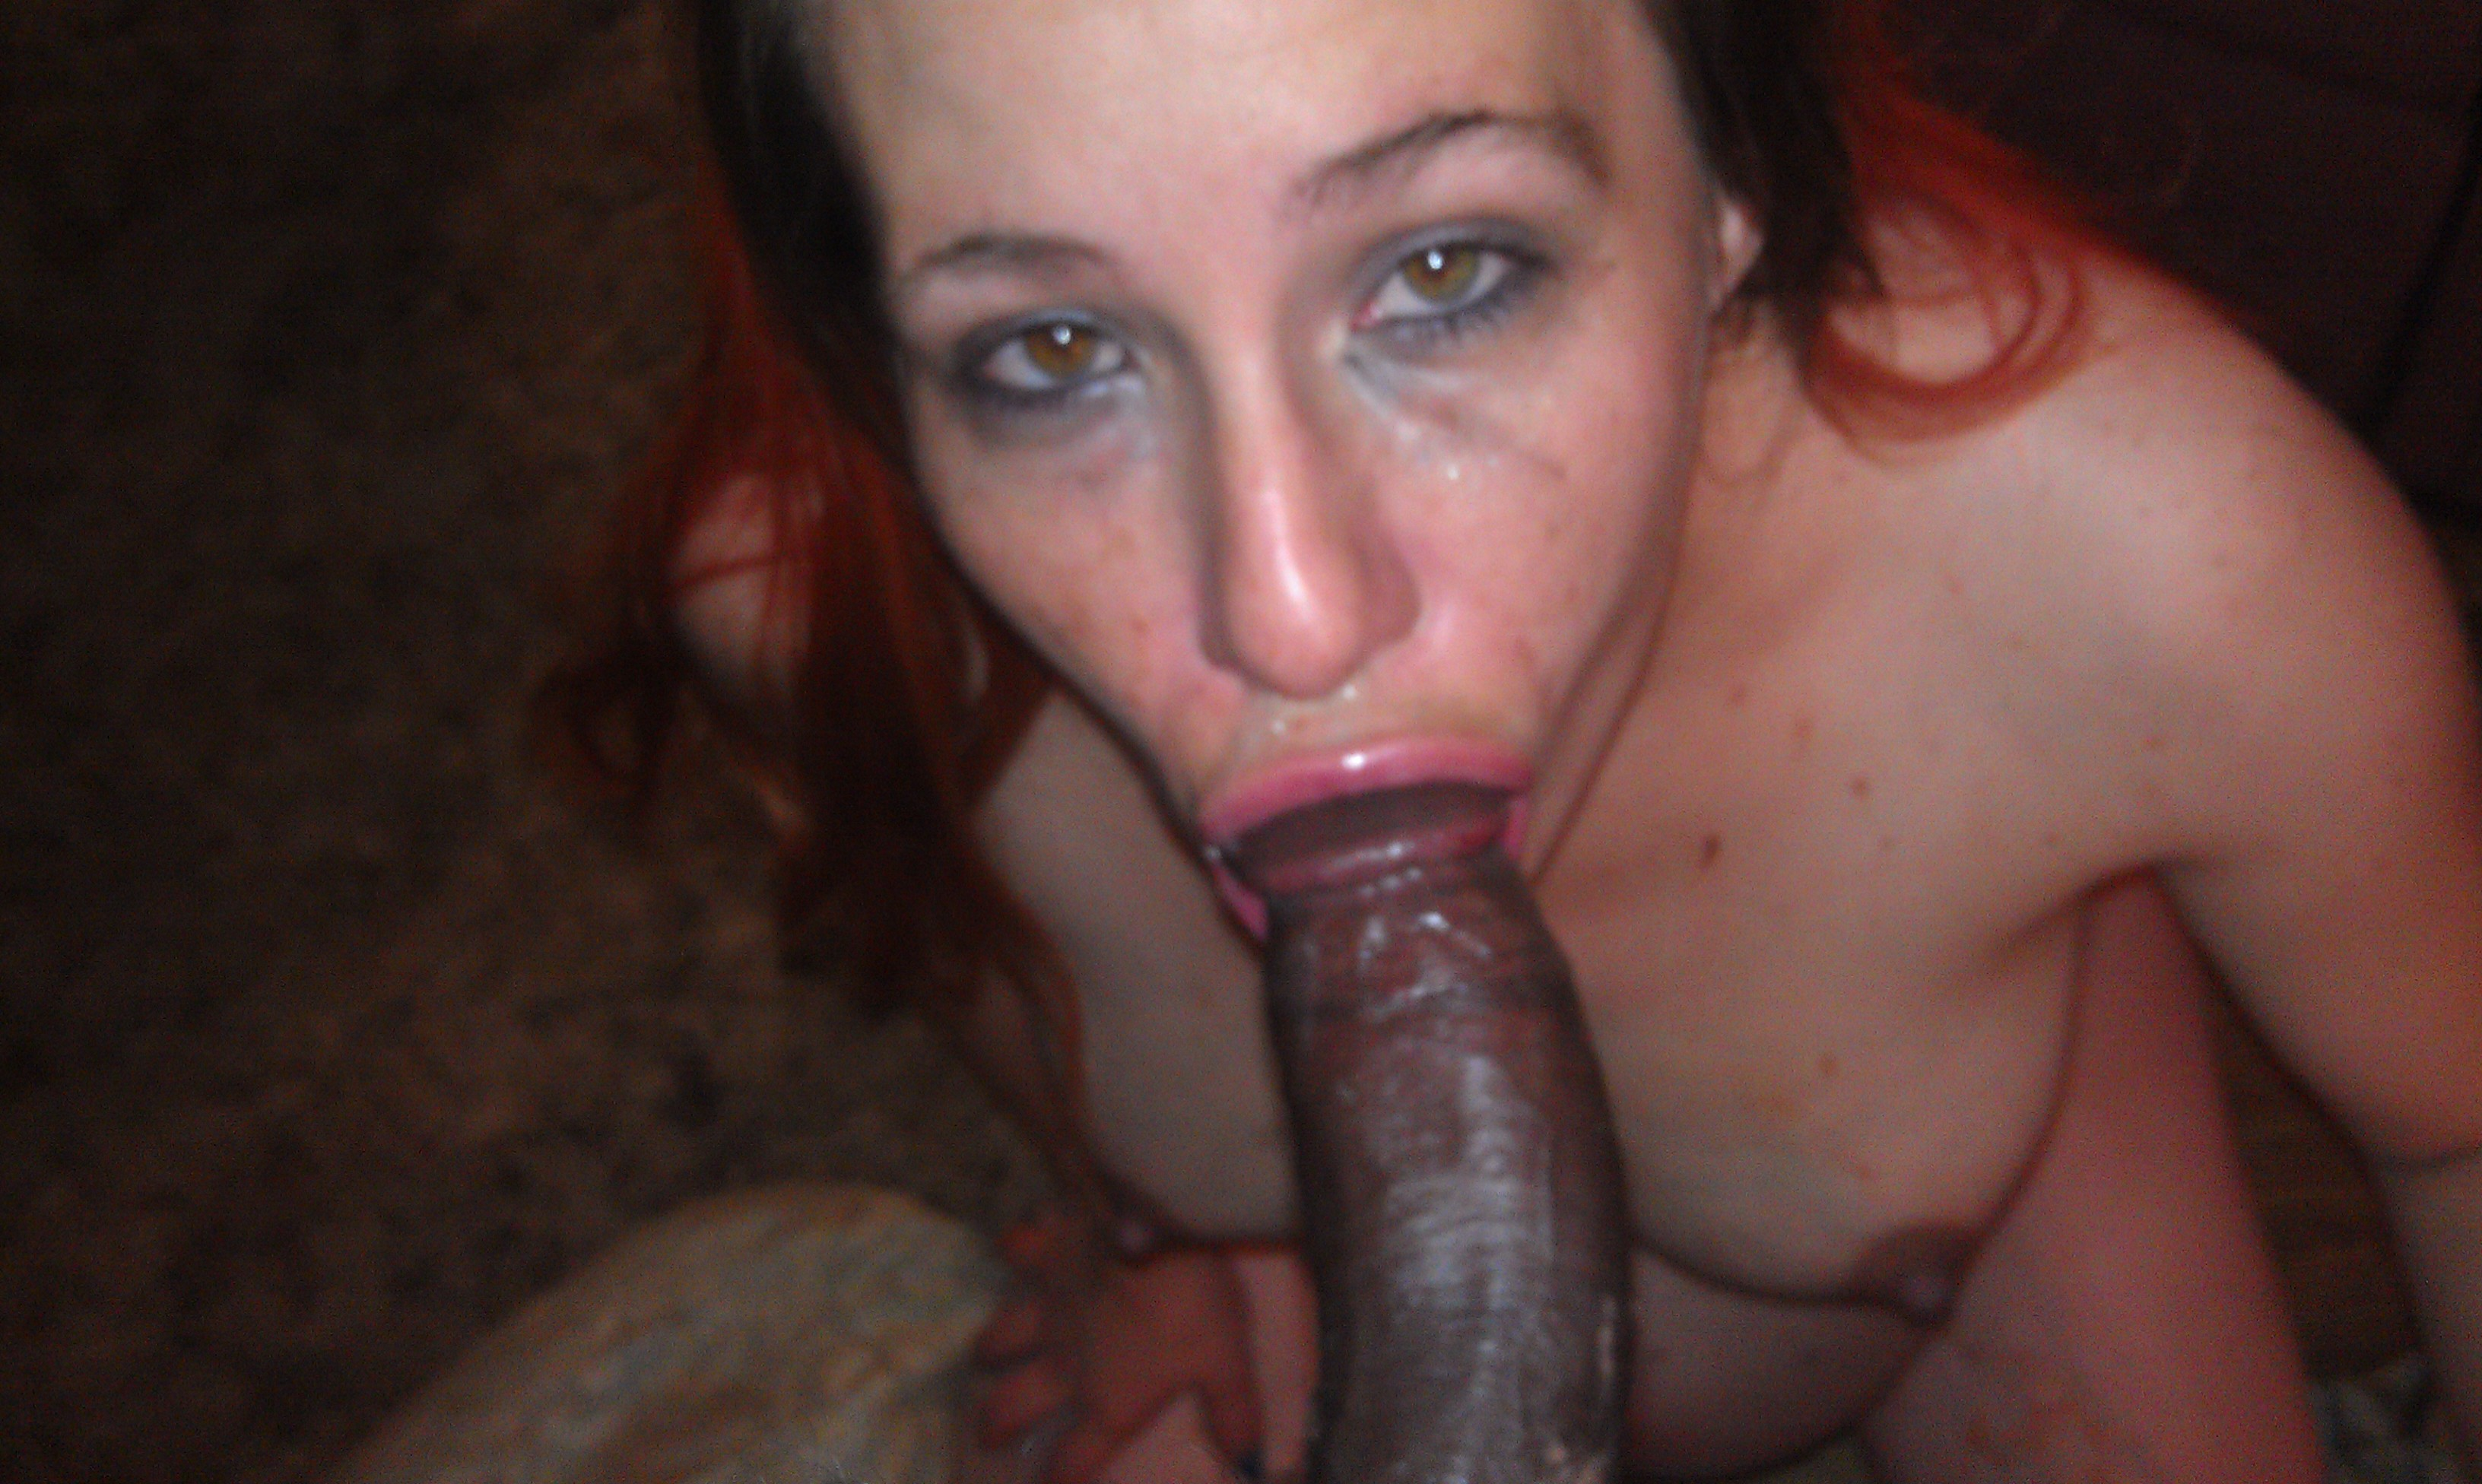 Remarkable, slave training sex deepthroat not